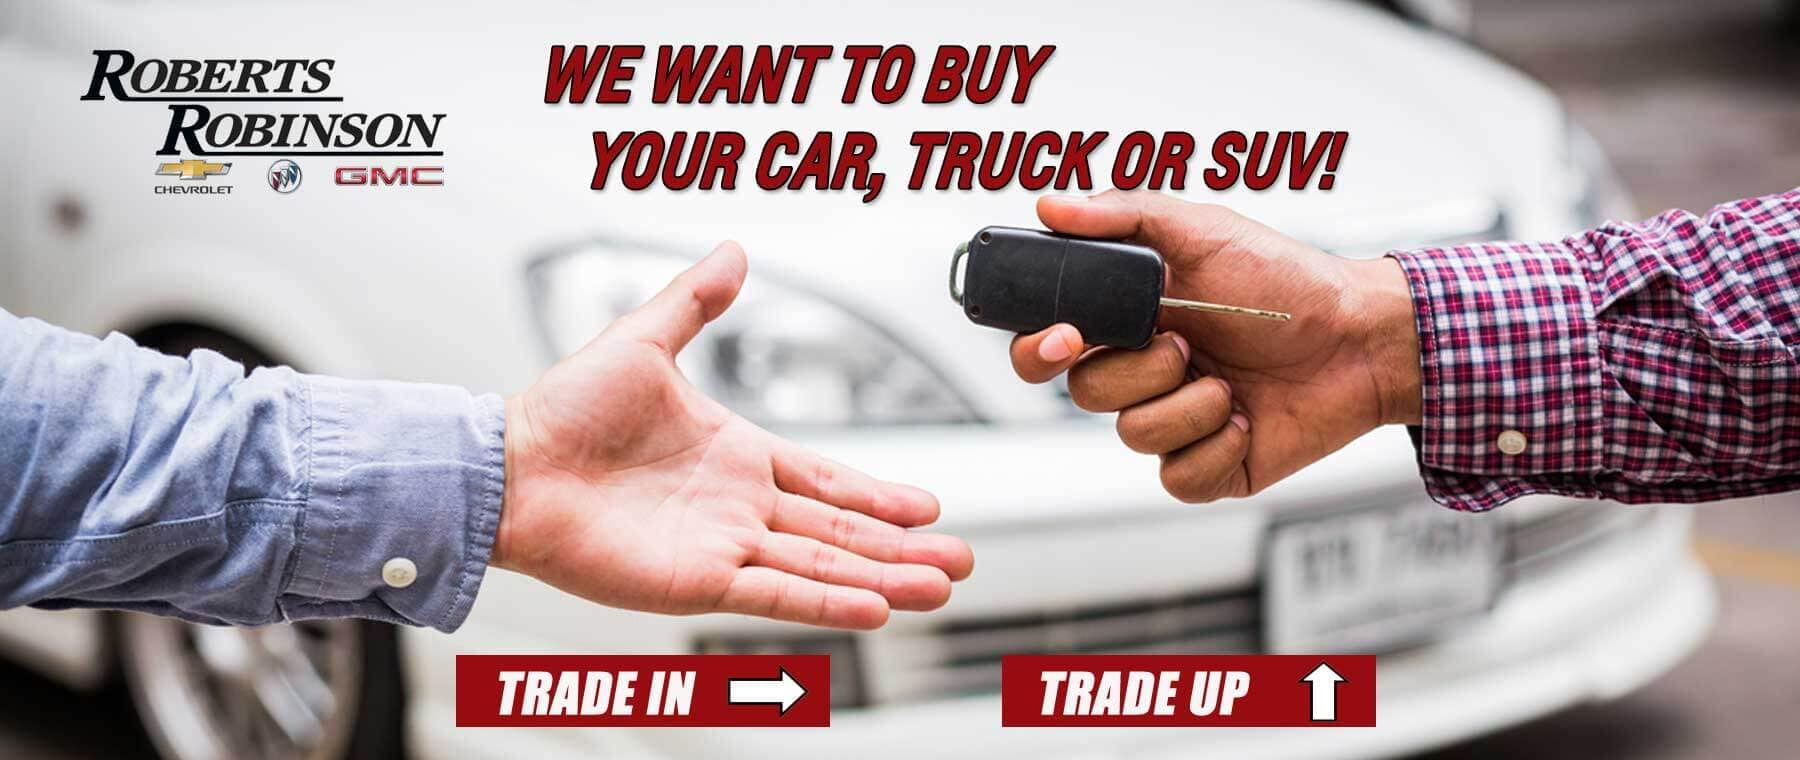 We will buy your used car, truck or SUV